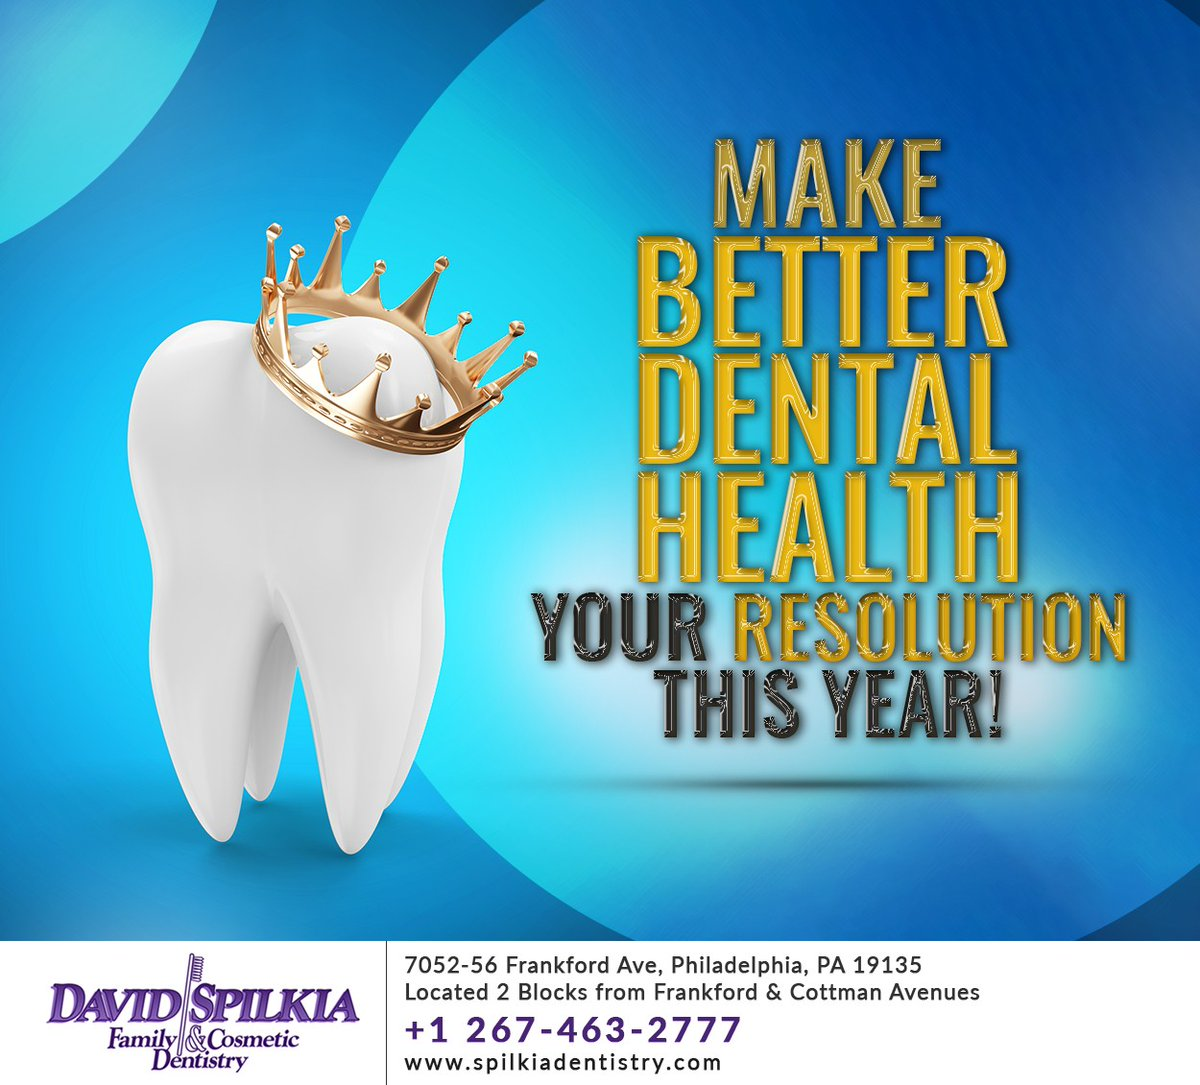 Make #2021 a better year by making a #dentalhealth resolution! Try resolving to #brush your #teeth before bed or to floss every day this year, and don't forget to make an appointment at https://t.co/SRdpIecOzF #newyear #philadelphia #PA #spilkiadentistry https://t.co/TgEz5vCsS8